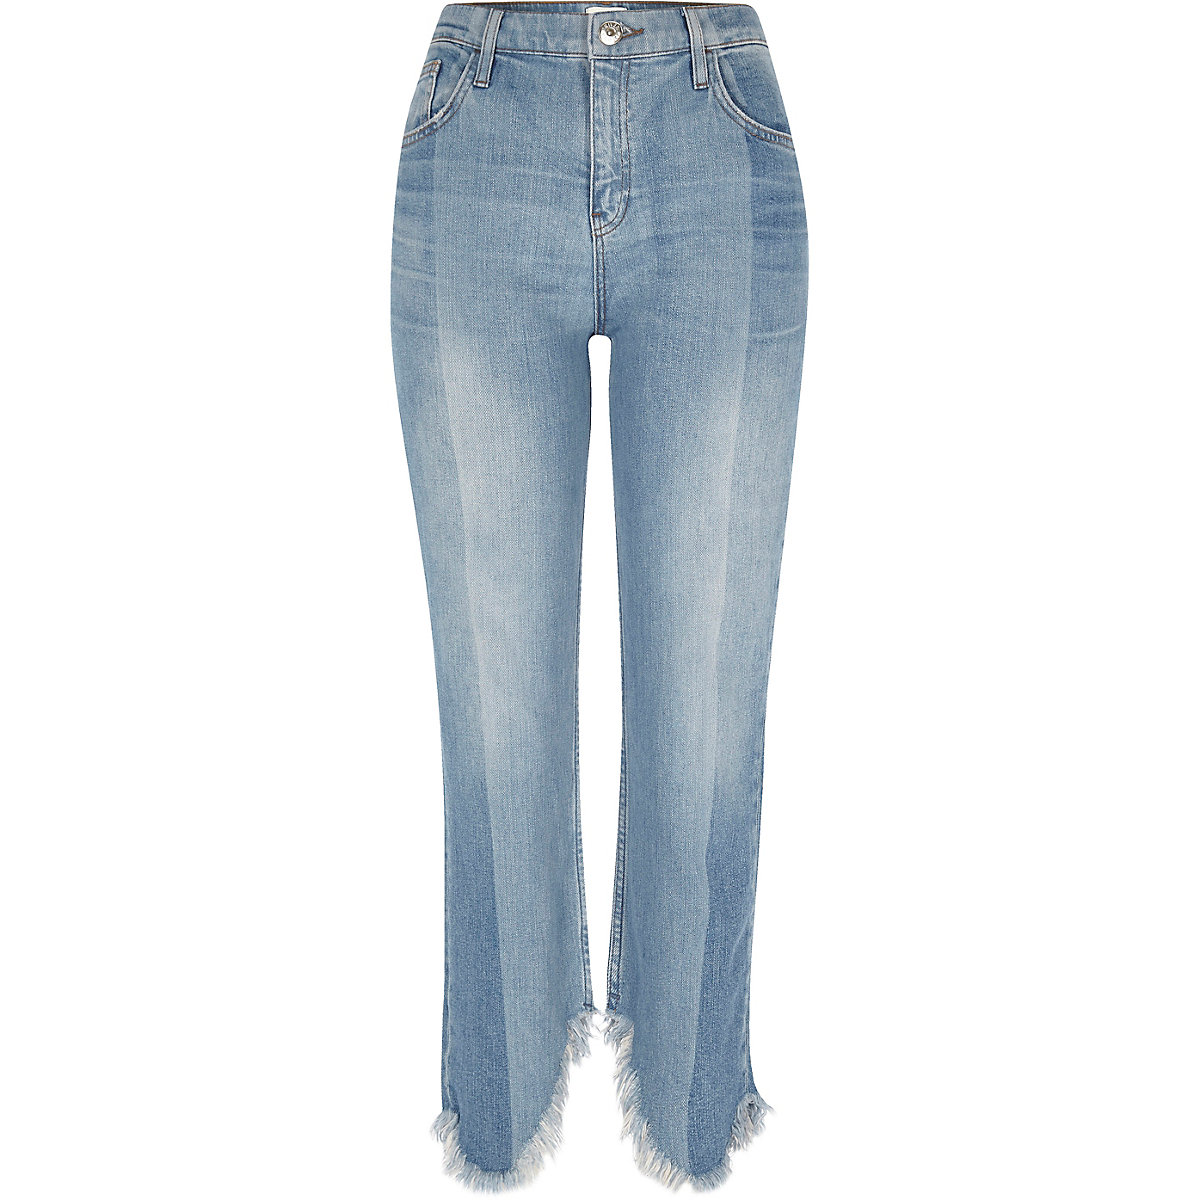 Light blue frayed straight cropped leg jeans